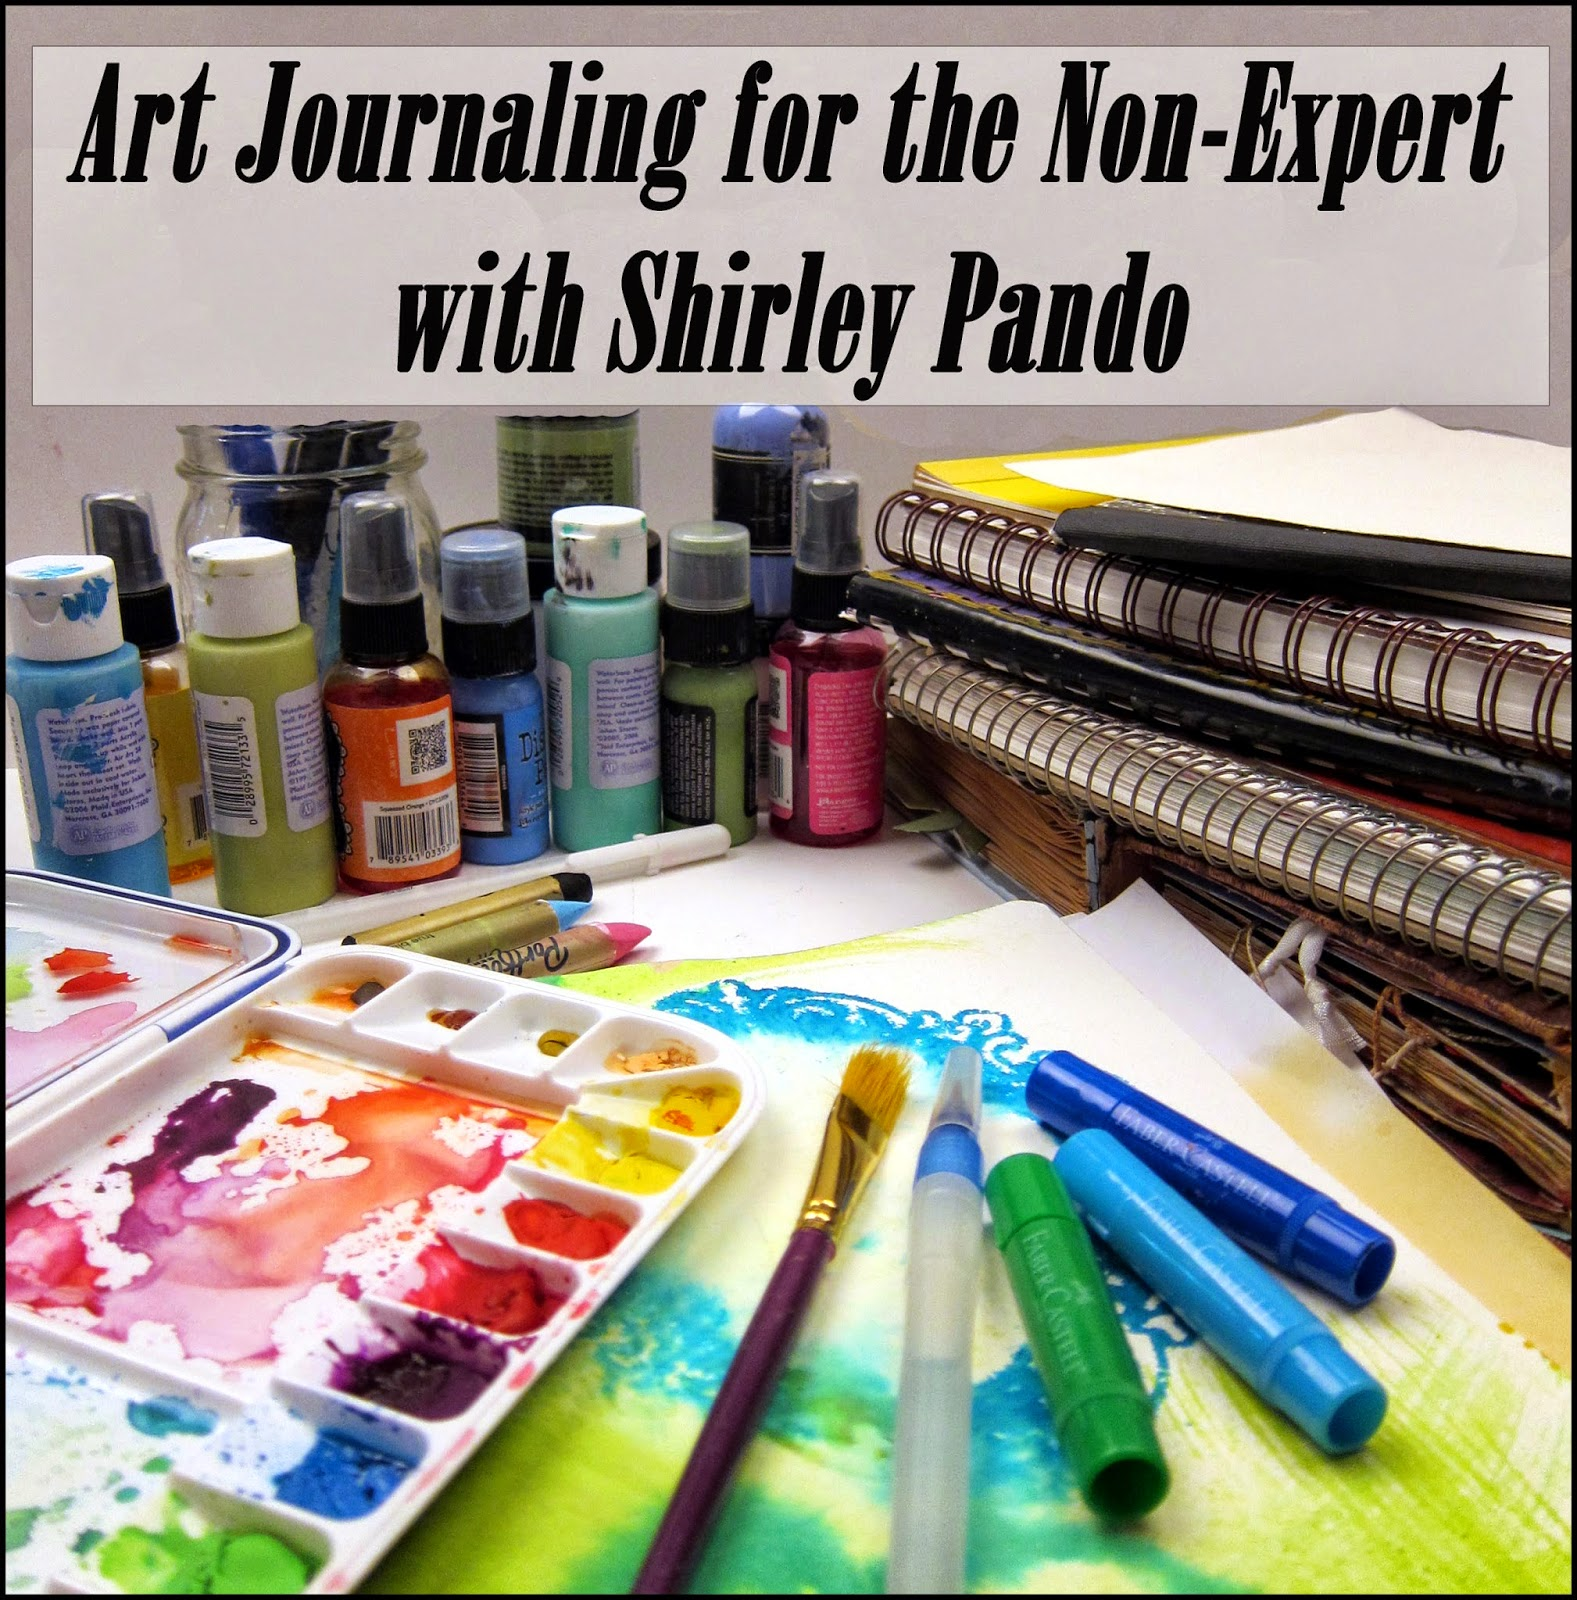 Art Journaling for the Non-Expert with Shirley Pando